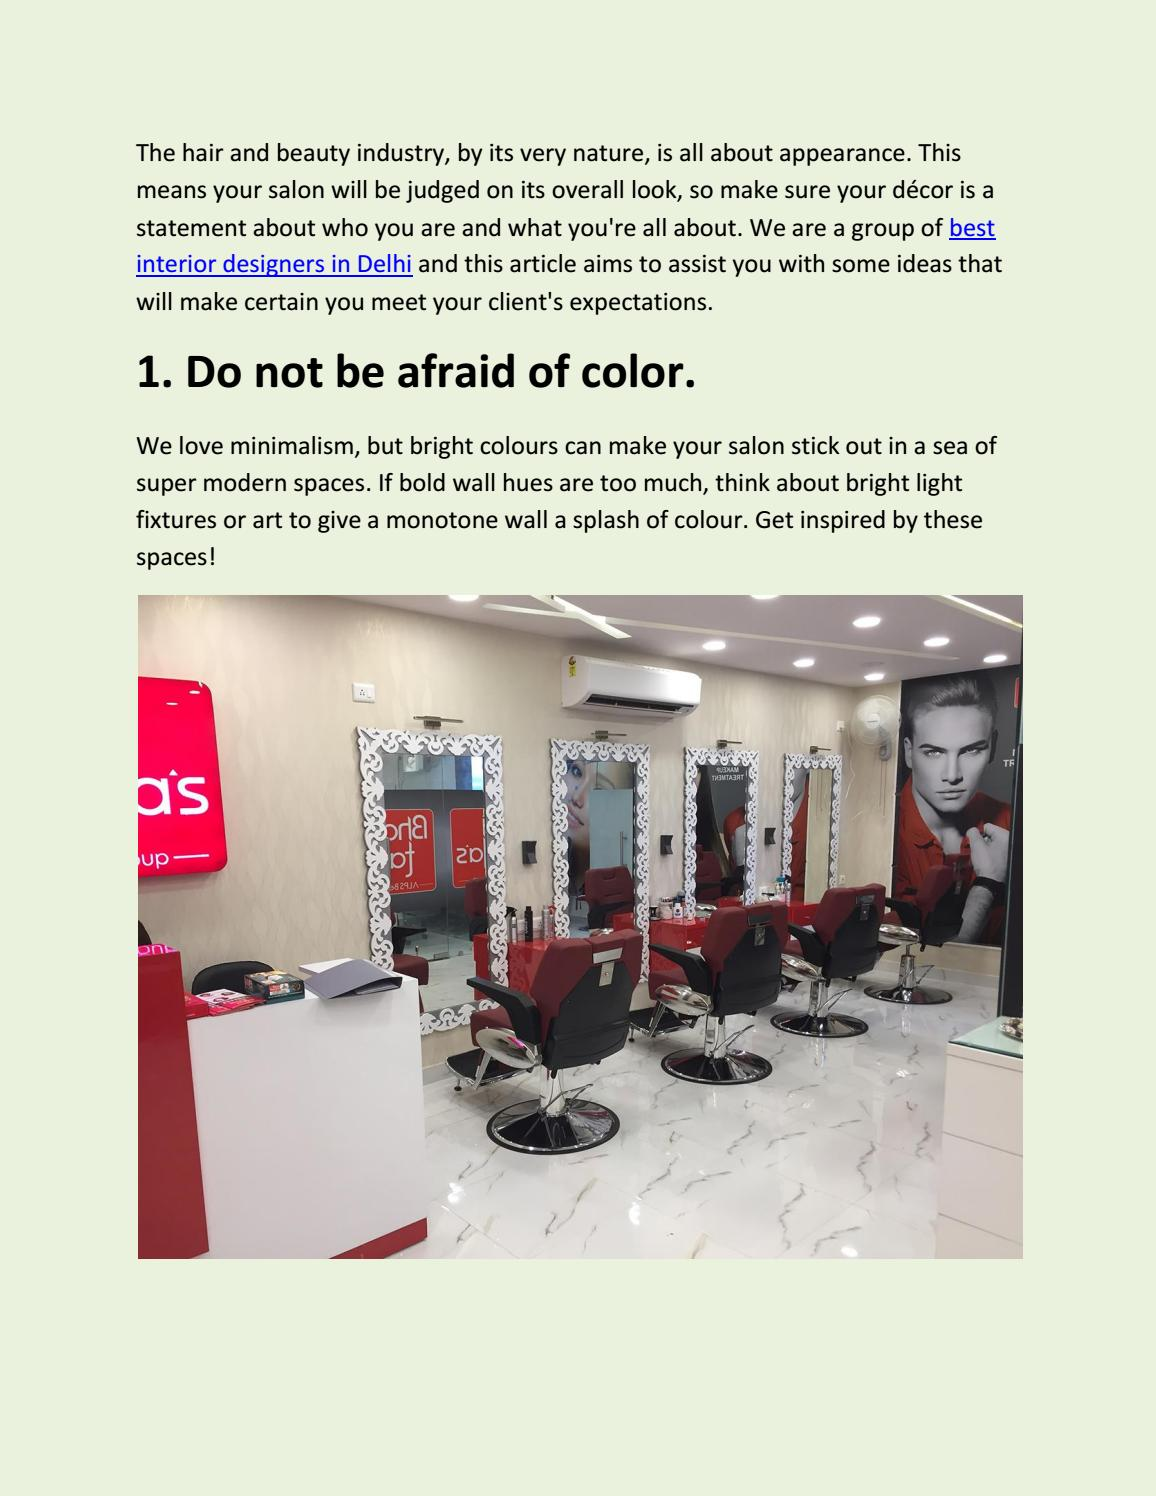 Top 10 Interior Designers For Salons In Delhi Ncr By Justinterio Issuu